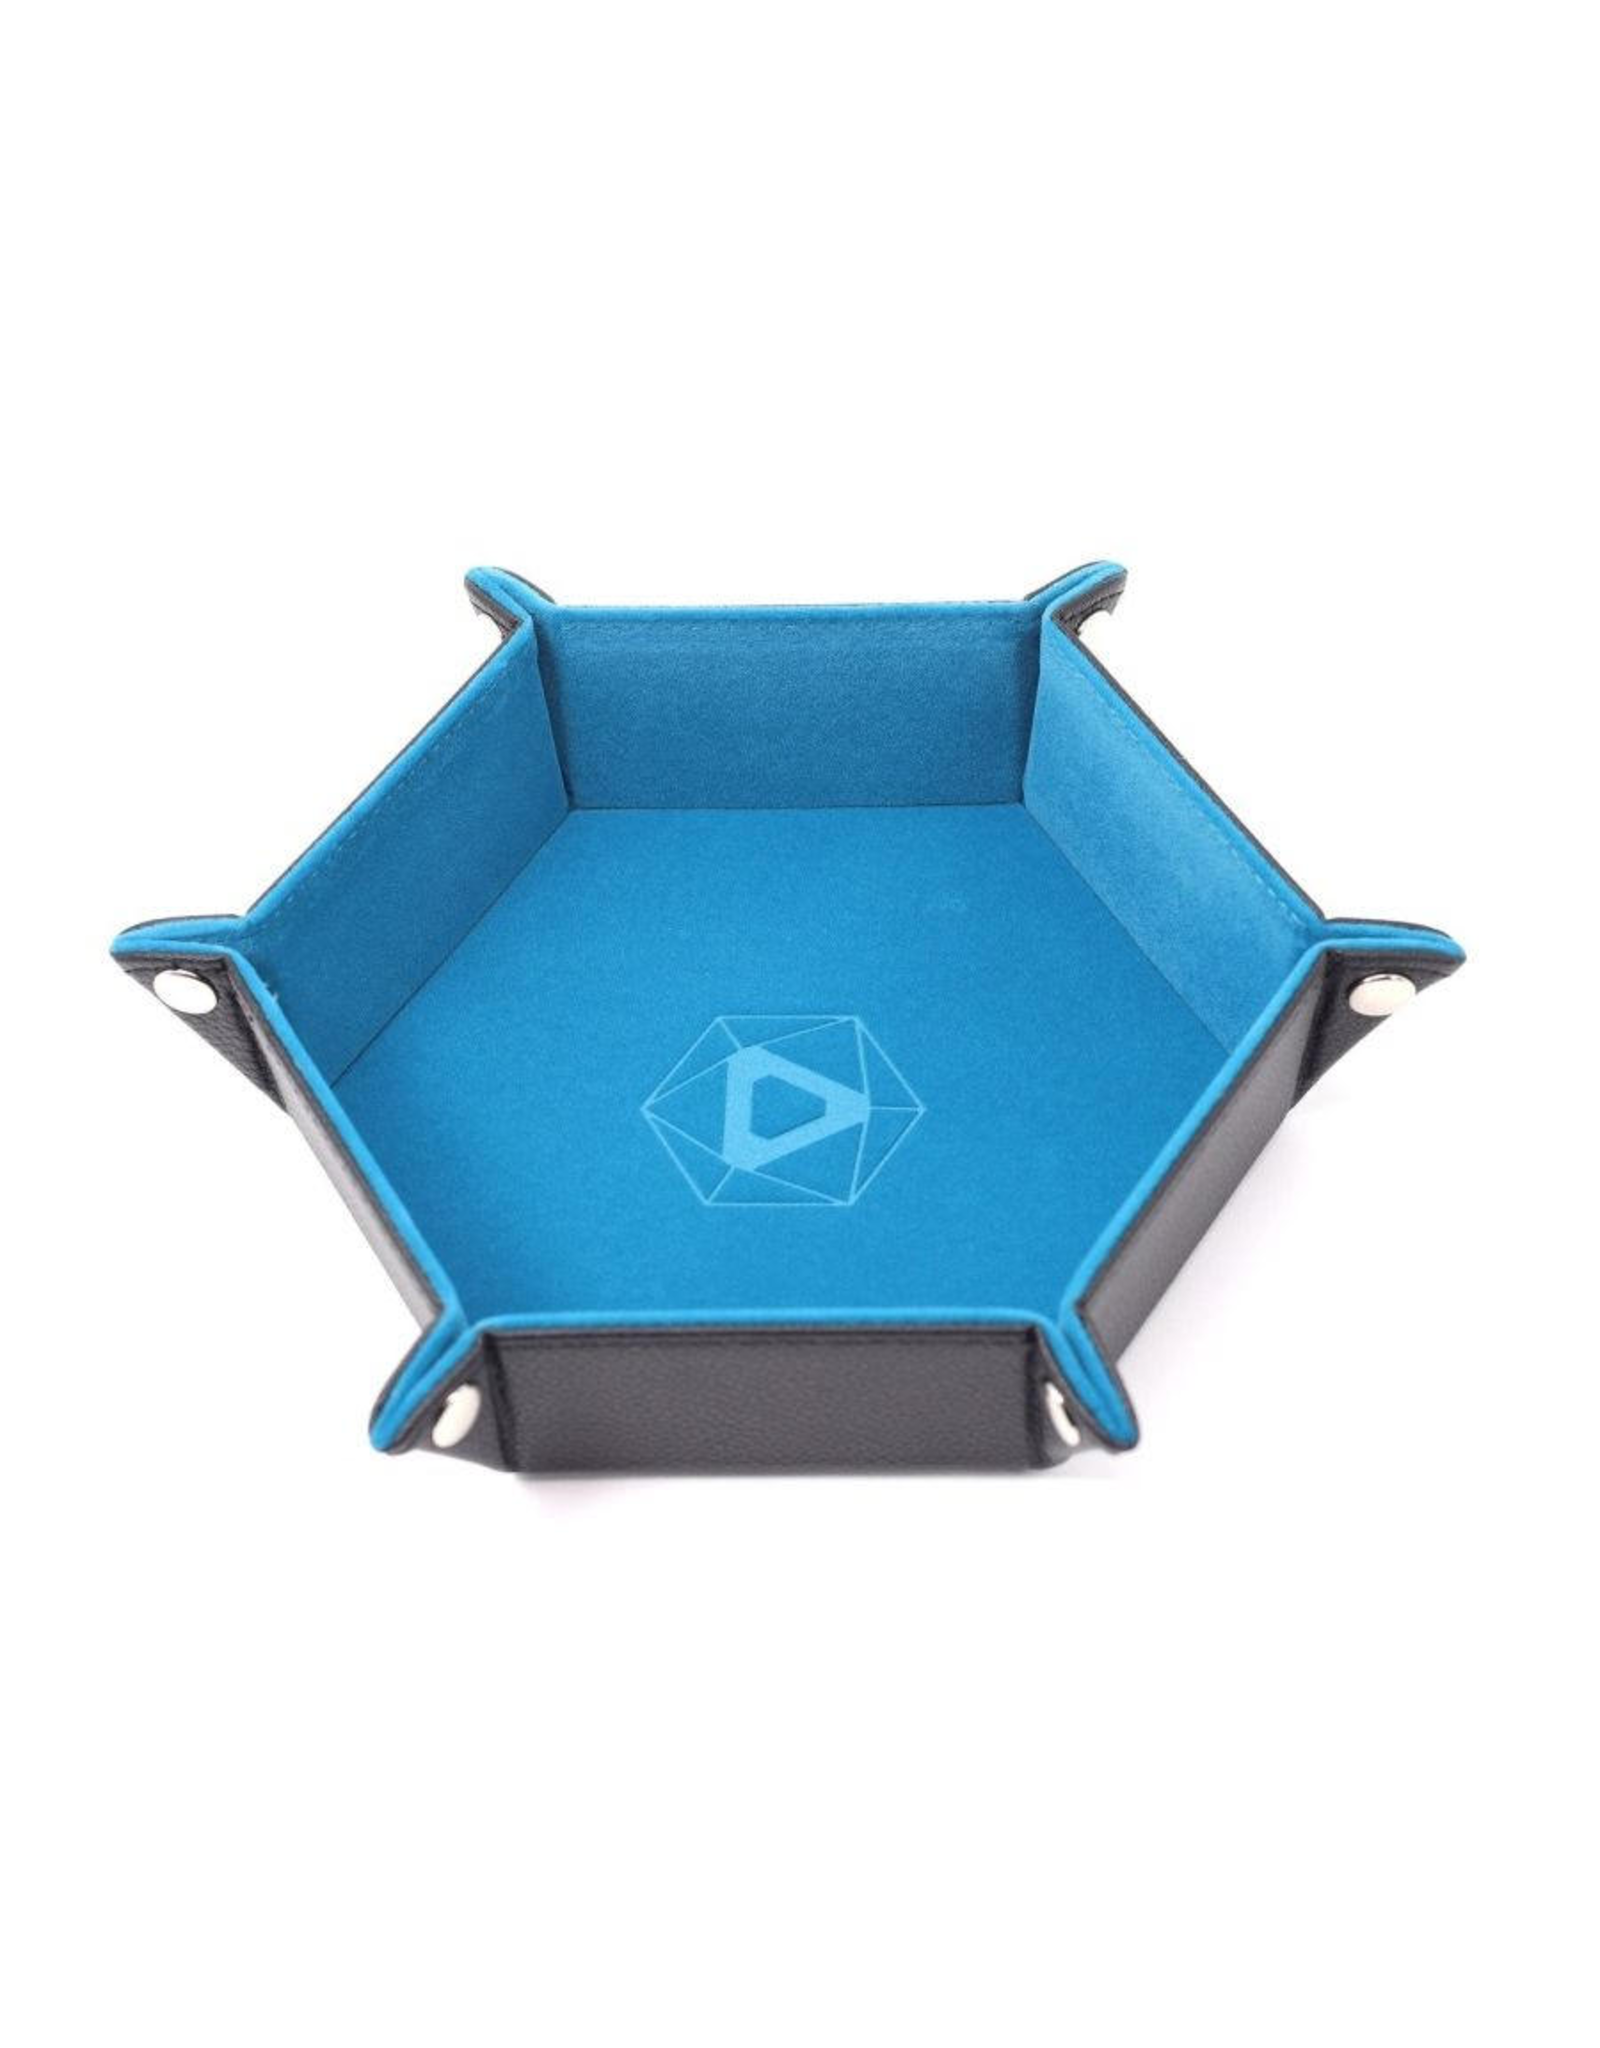 Die Hard Dice Die Hard Dice: Dice Tray Hex Teal